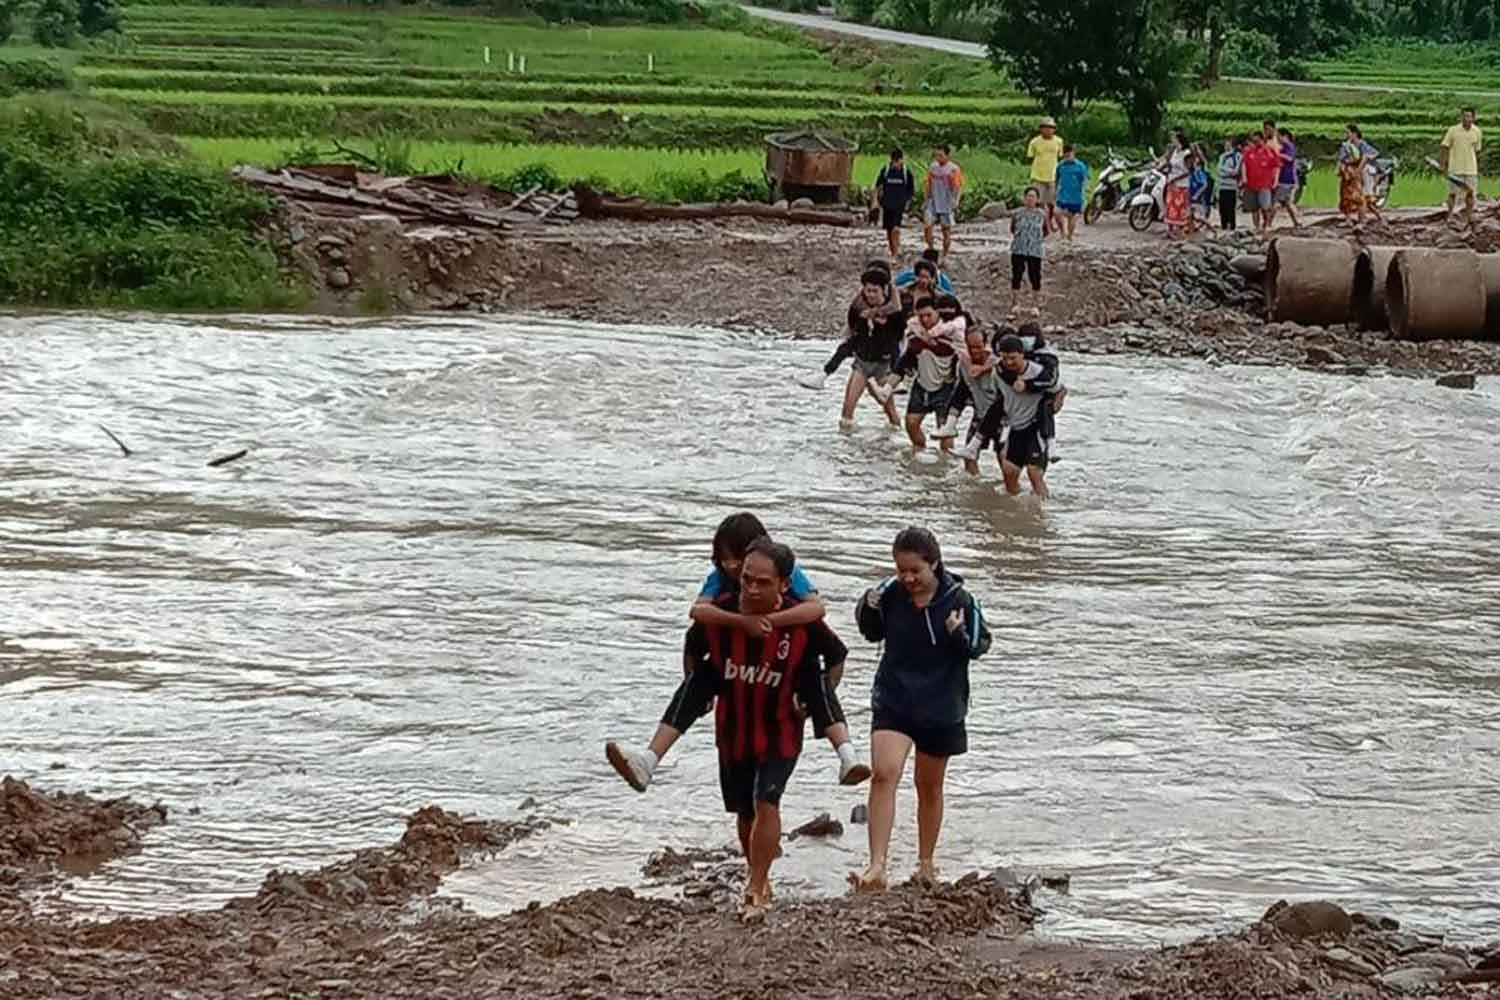 A man carries a child across the Mae Lao River to go to school as other flood victims follow.(Photo by Saiarun Pinaduang)